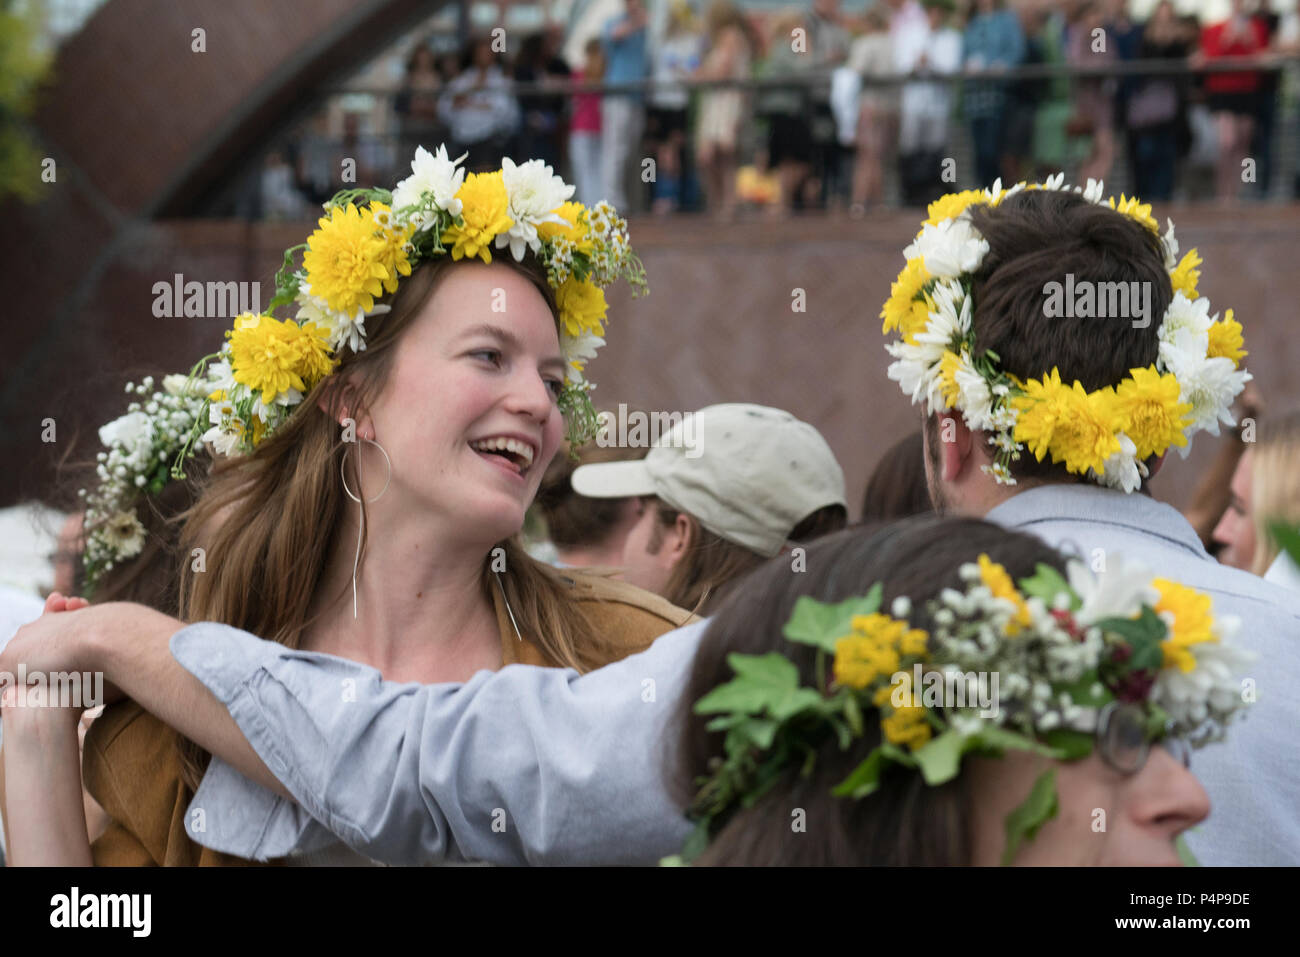 New York, USA. 22nd June, 2018. The Swedish Midsummer Festival in Battery Park City's Wagner Park is the largest in New York City and the third largest in the world. Thousands of people attend to dance around the maypole, listen to fiddle music, eat Swedish food and make wreaths of flowers for their hair. This year, the Dalarnas Fiddlers Association from Sweden joined Paul Dahlin and fiddlers from the American Swedish Institute in Minneapolis to play for the festival. (Credit: Terese Loeb Kreuzer/Alamy Live News) Stock Photo